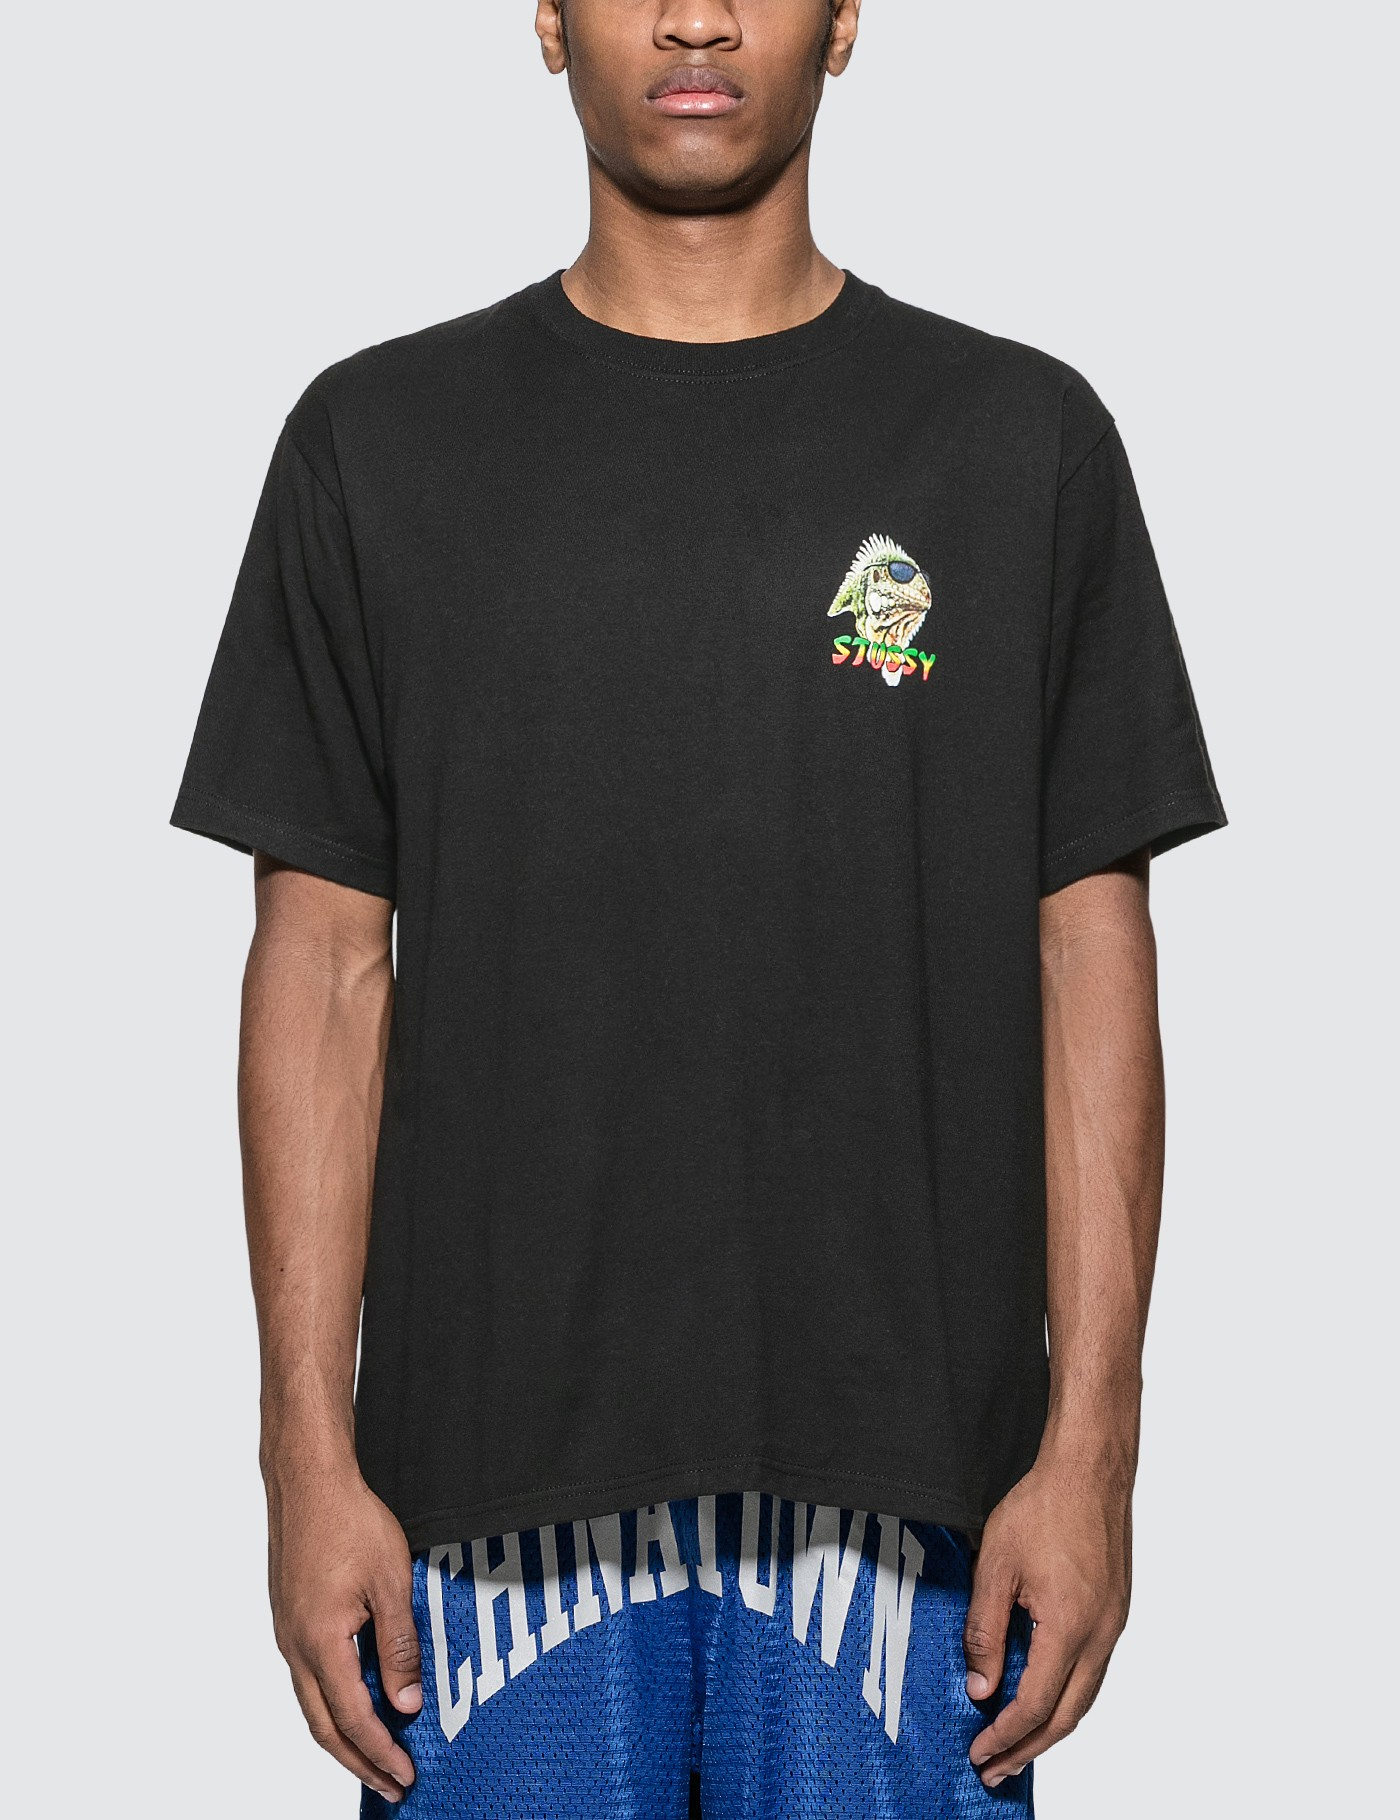 Stussy No Bad Days T-shirt